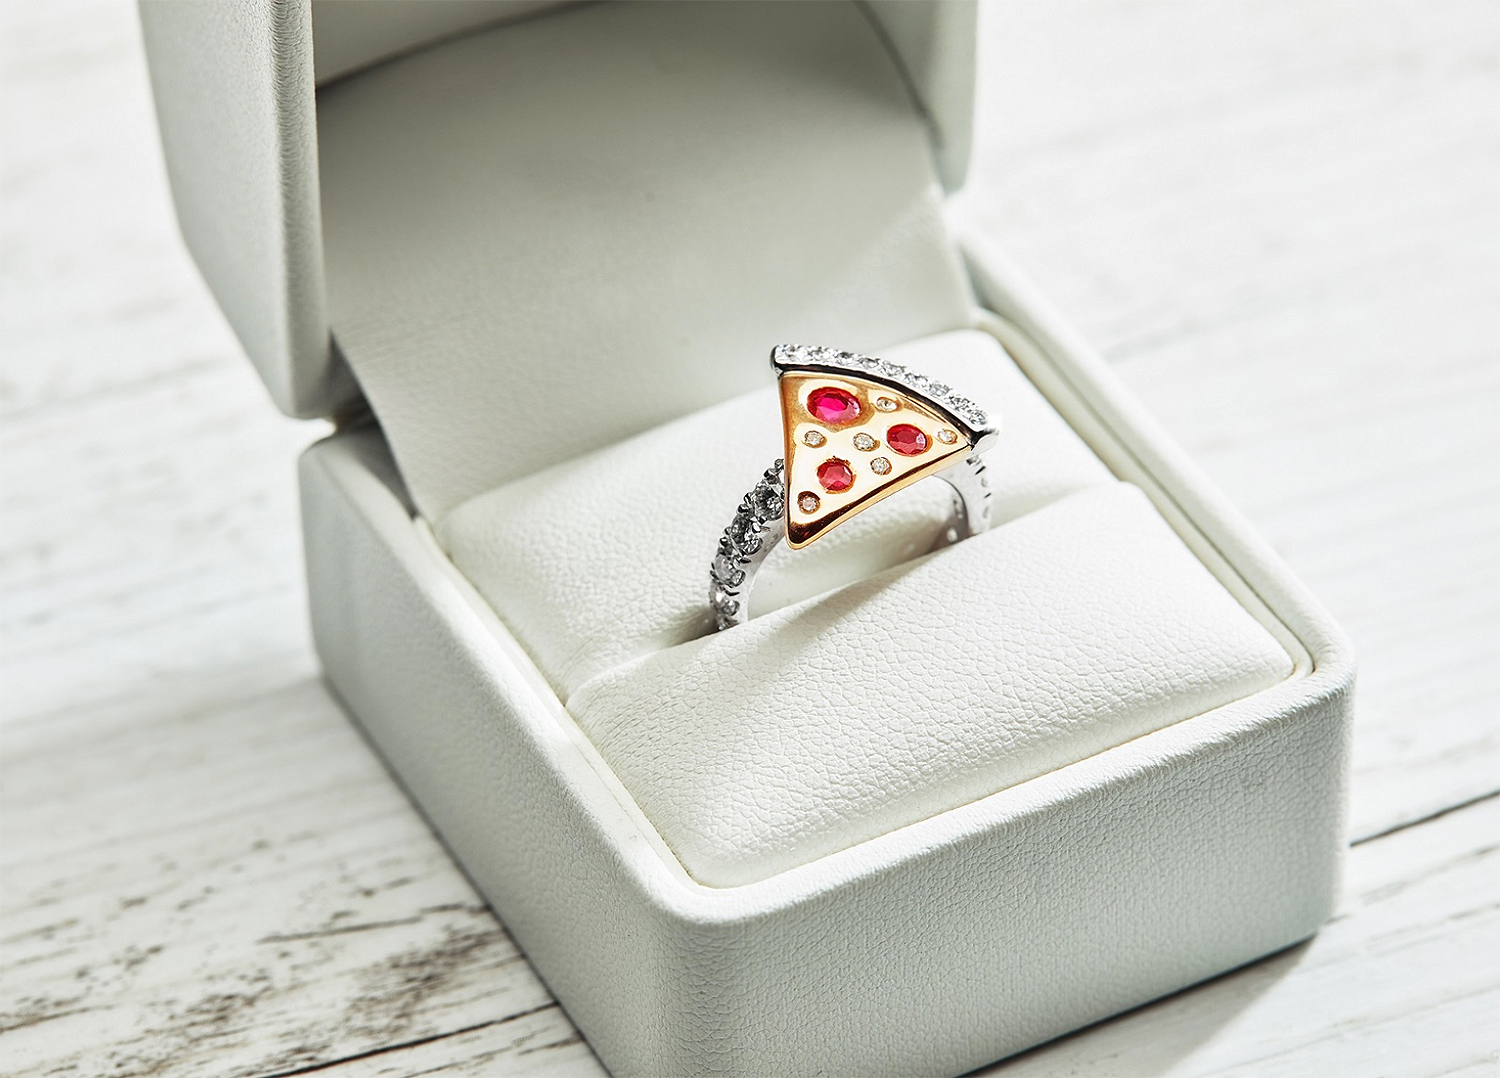 dominos pizza engagement ring